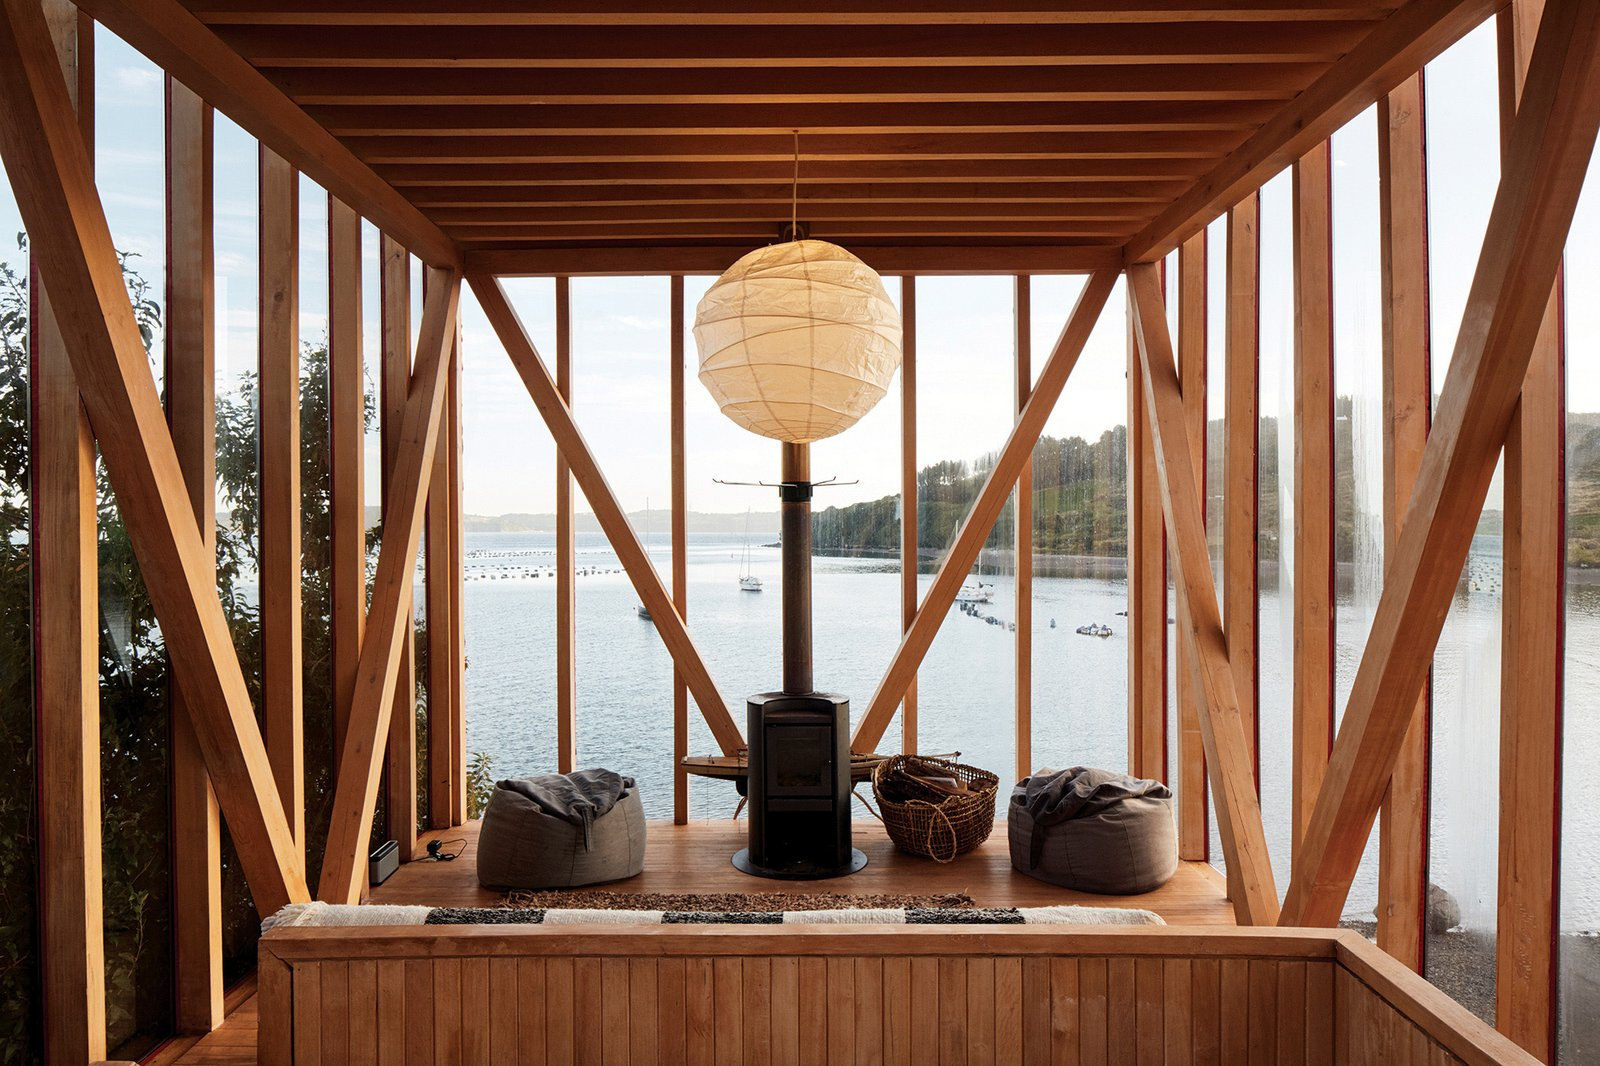 Living, Sofa, Pendant, Medium Hardwood, Wood Burning, and Chair The upper floor of one of the cabins features a wood-burning stove, beanbag chairs, and a hanging paper lantern.  Best Living Photos from An Architect in Chile Transforms an Uninhabited Island Into a Hideaway for Friends and Family